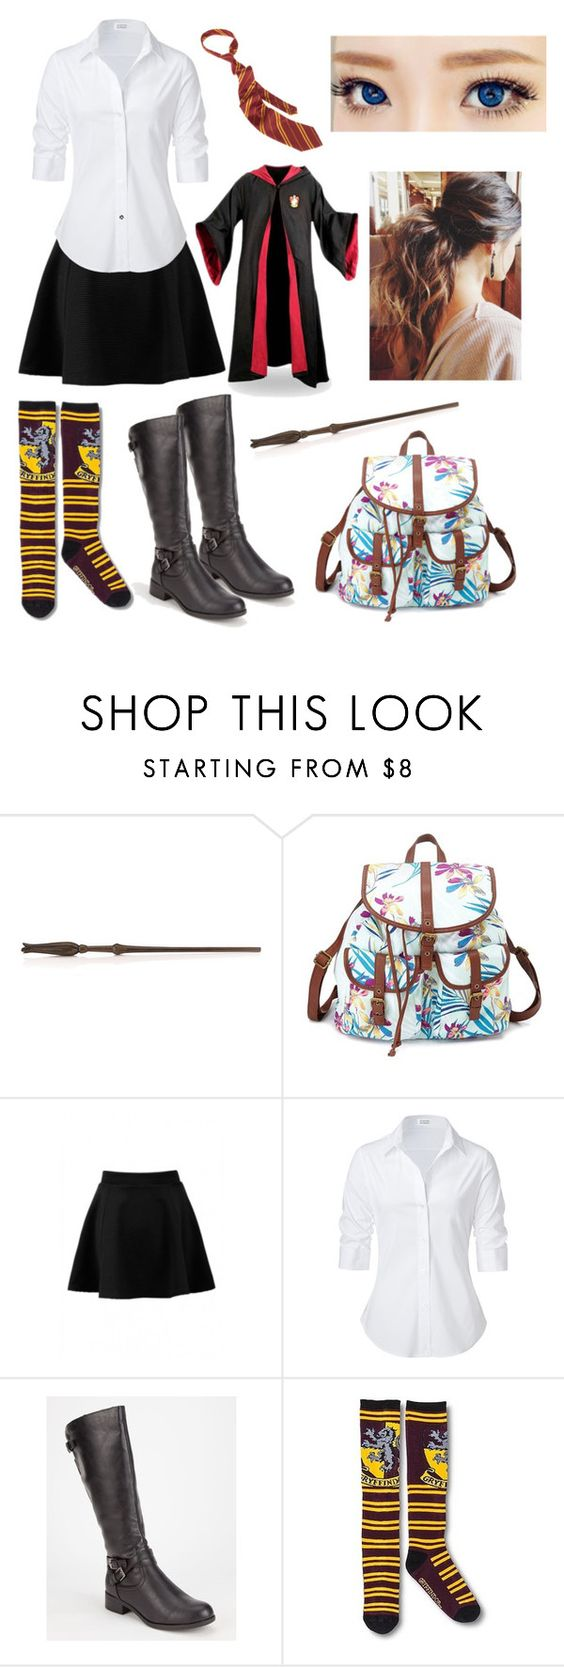 """""""The Jewel of His Life: Hogwarts Uniforms"""" by capeles on Polyvore featuring beauty, Charlotte Russe, Steffen Schraut and Soda"""